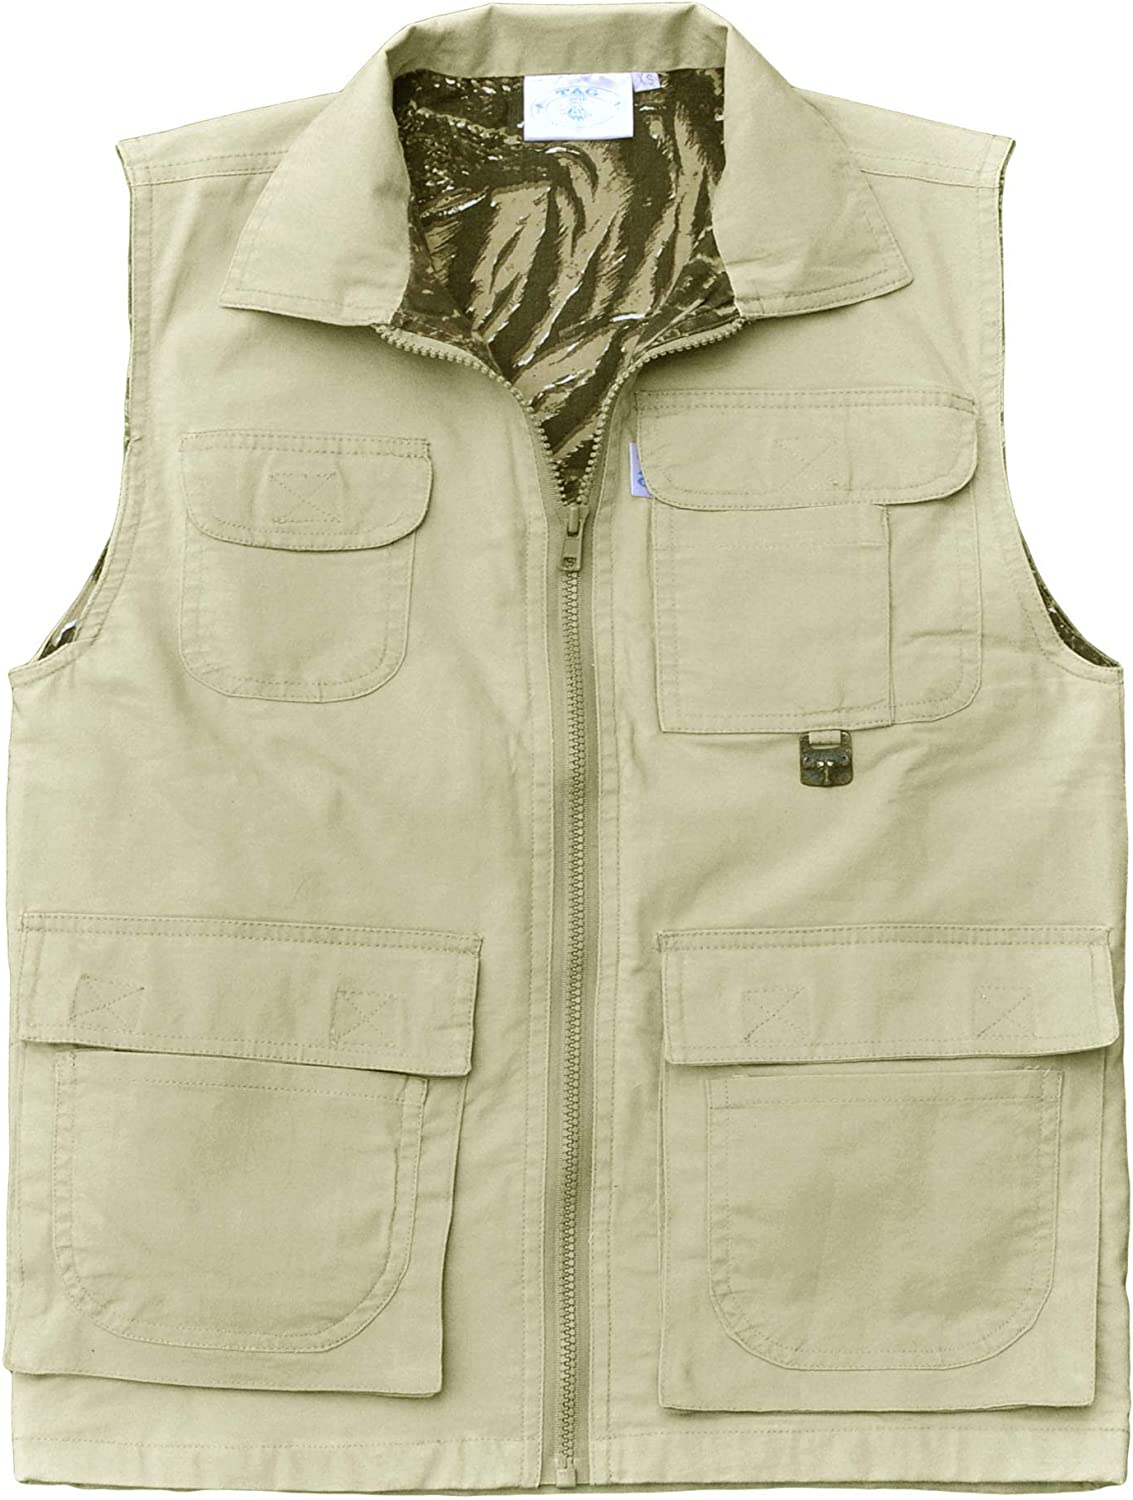 womens safari vests